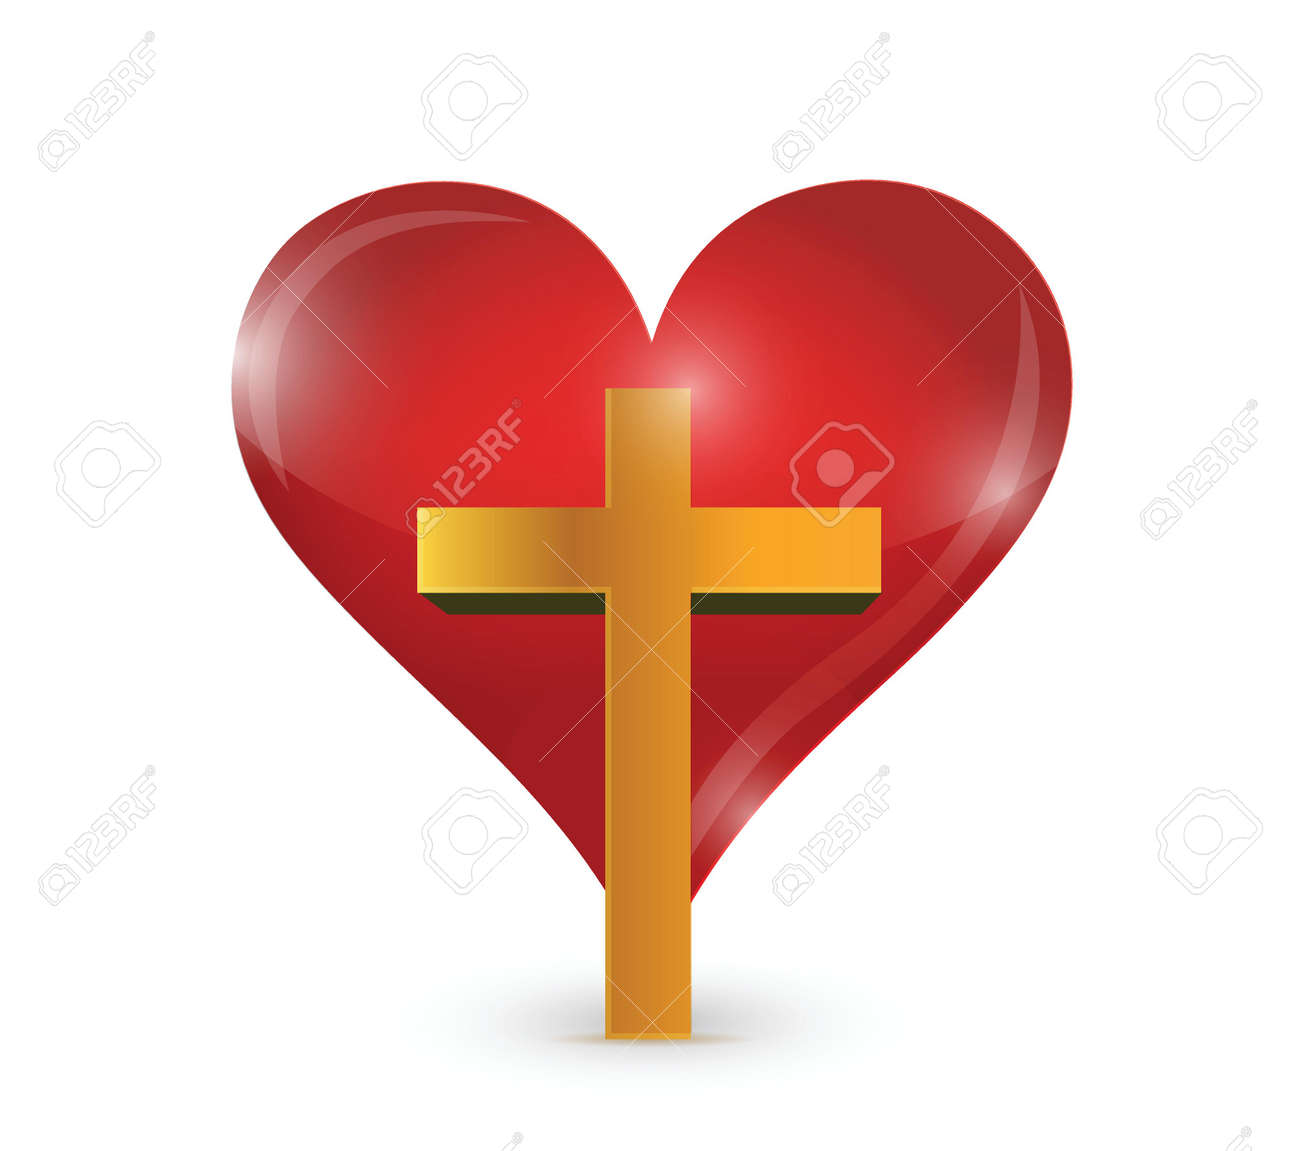 cross and heart illustration design over a white background royalty